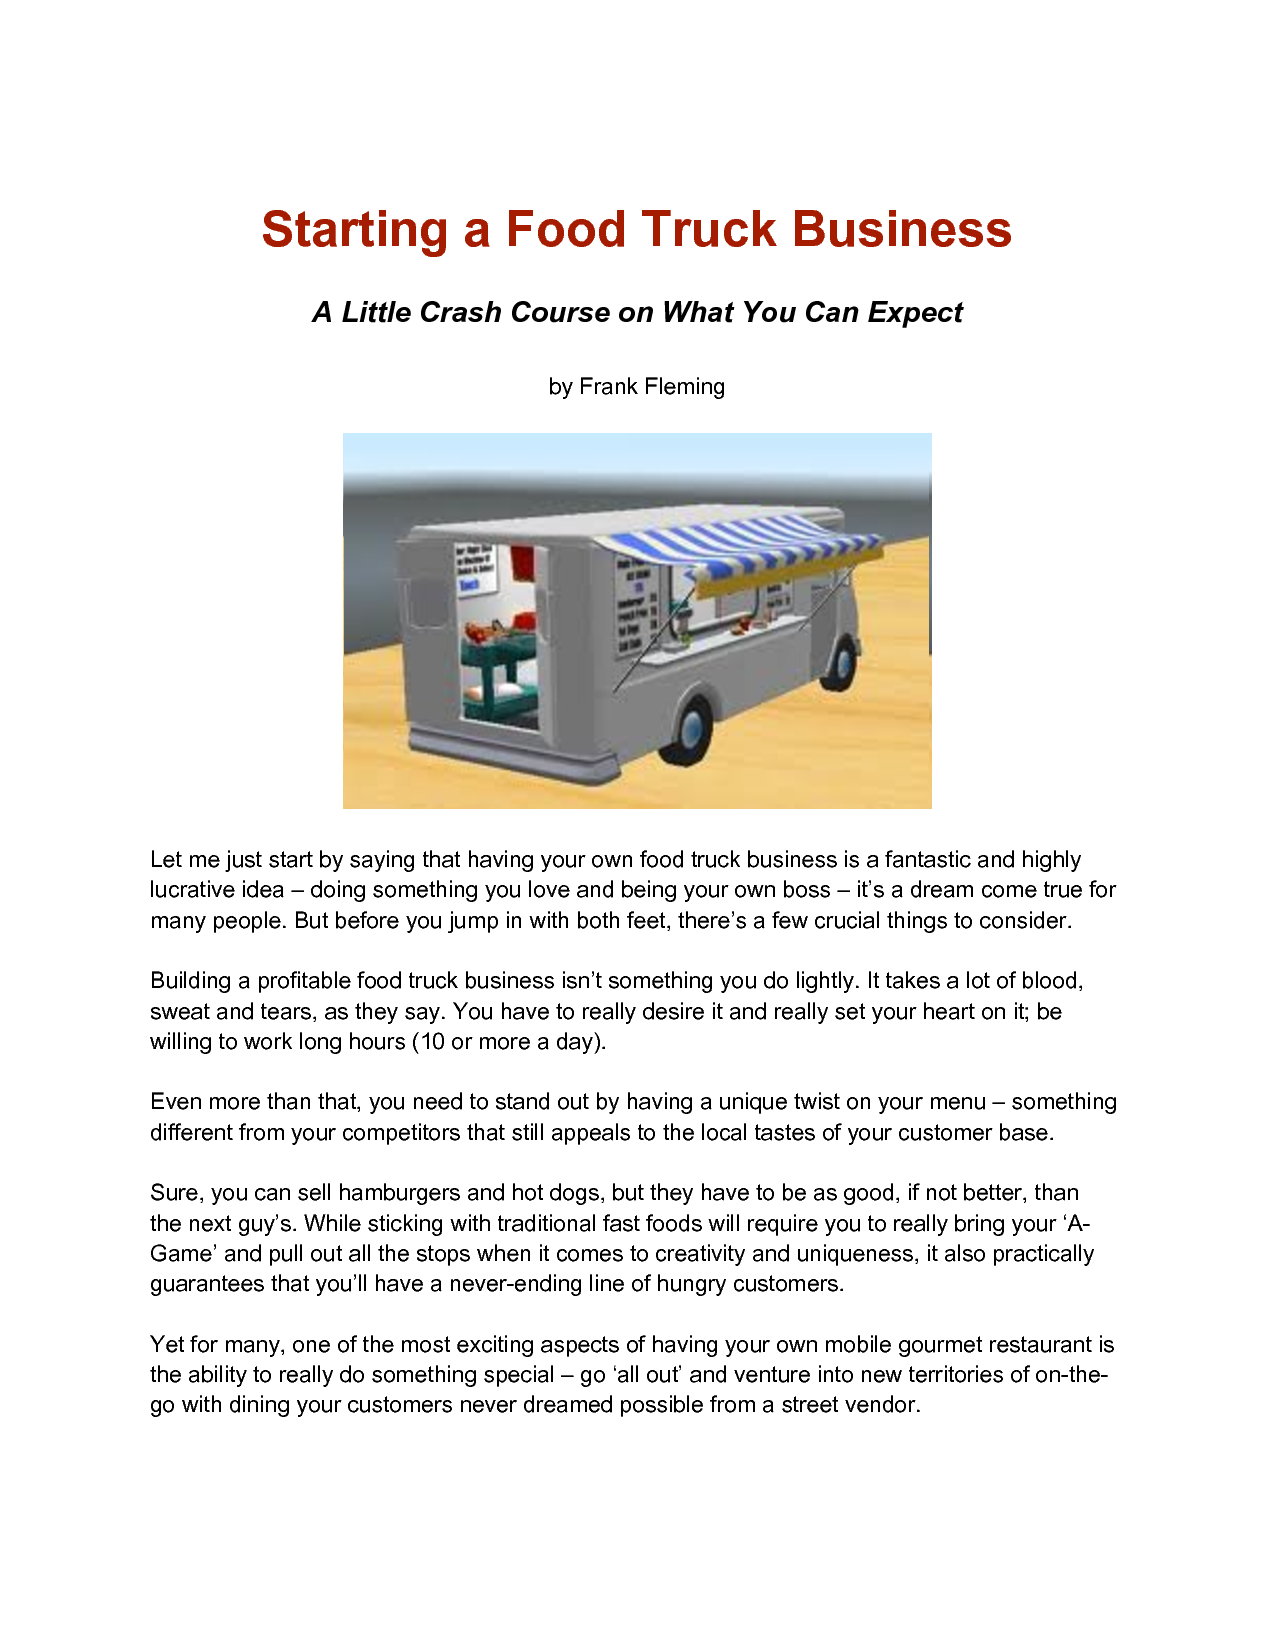 Food truck business plan template httprplg8ebfc880 food truck business plan template httprplg8ebfc880 startbusiness wajeb